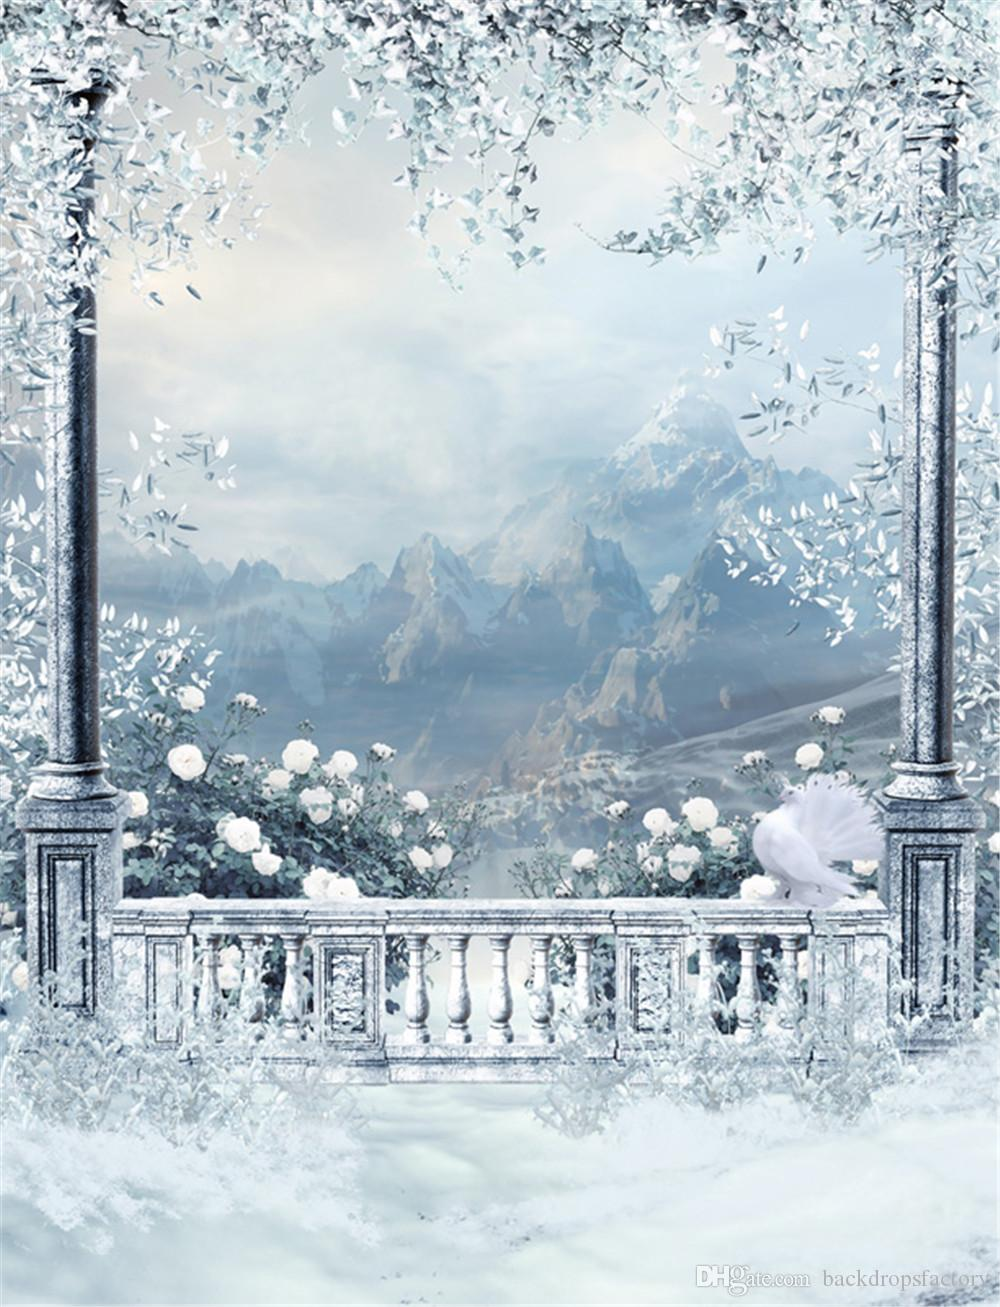 2018 Winter Snow Scenic Wallpaper Outdoor Background White Pigeon Trees Leaves Mountains Vintage Castle Balcony Wedding Photography Backdrops From